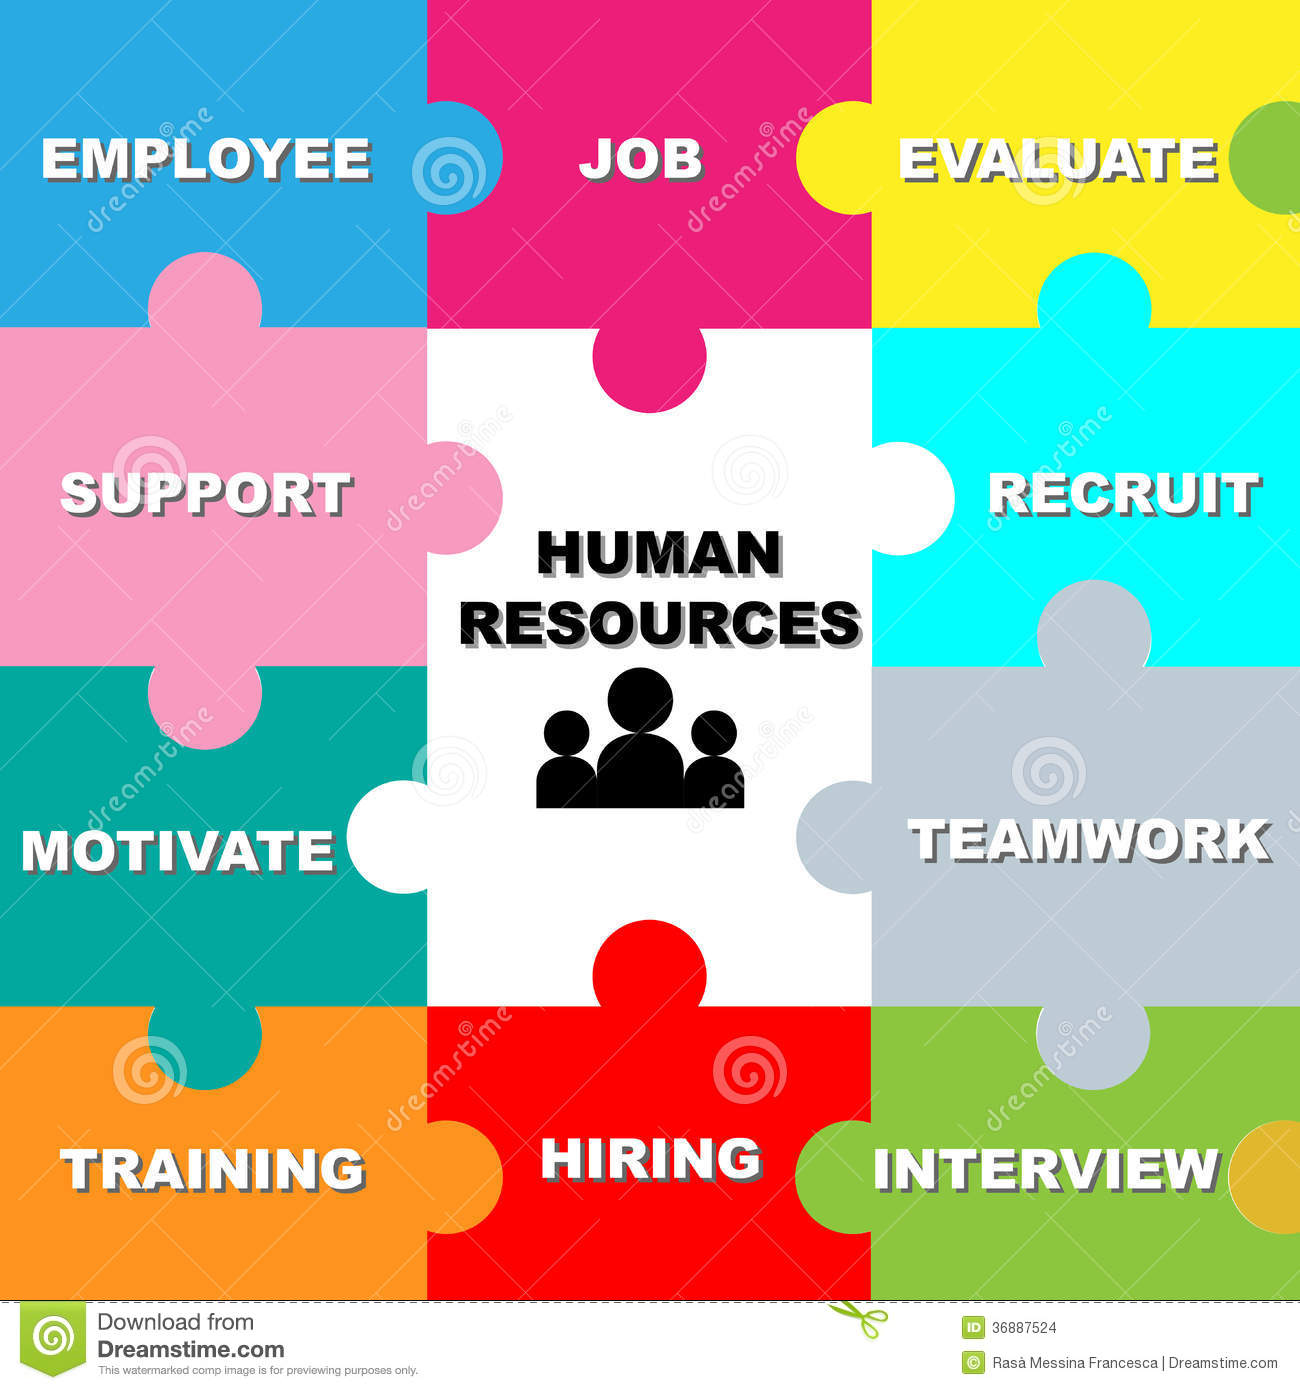 Human Resources: Human Resources Stock Images